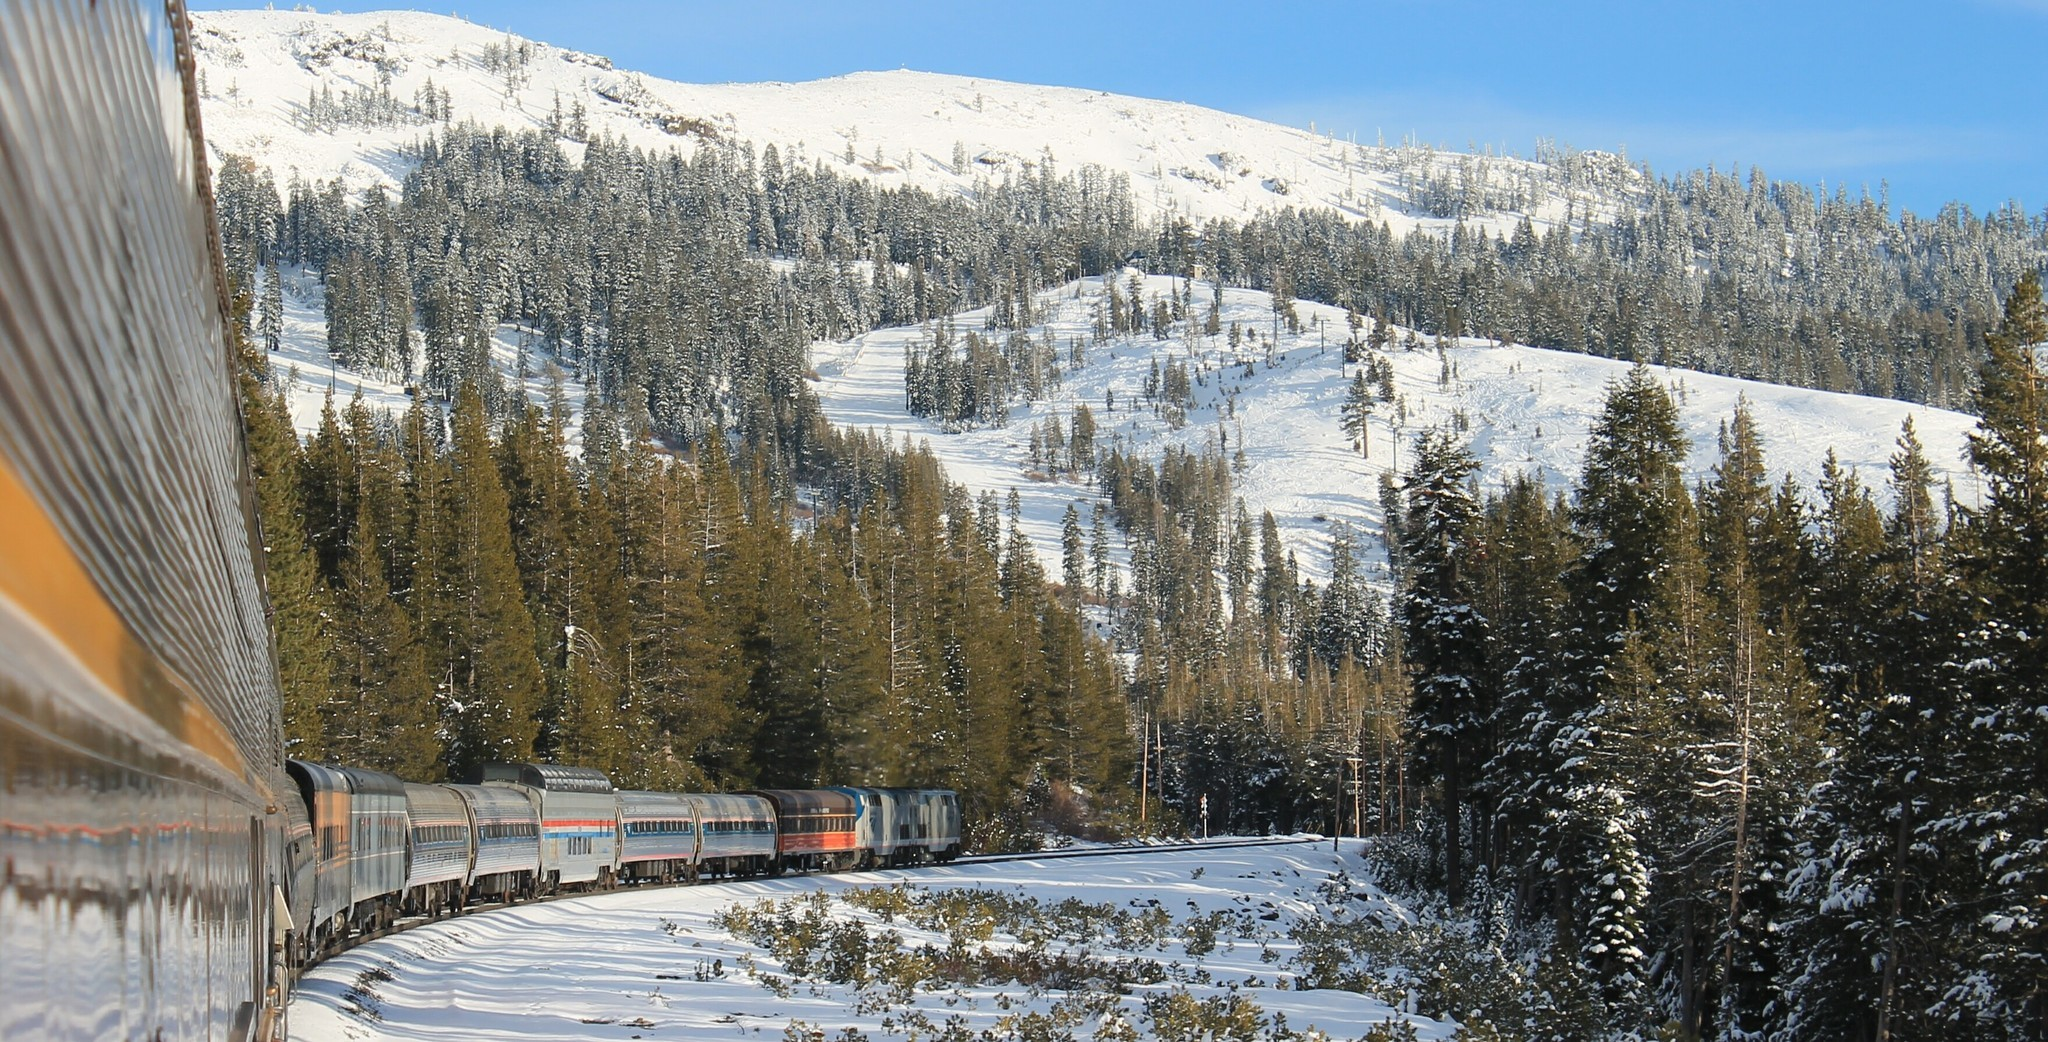 See the snowy Sierra with 2 winter train tours from the Bay Area